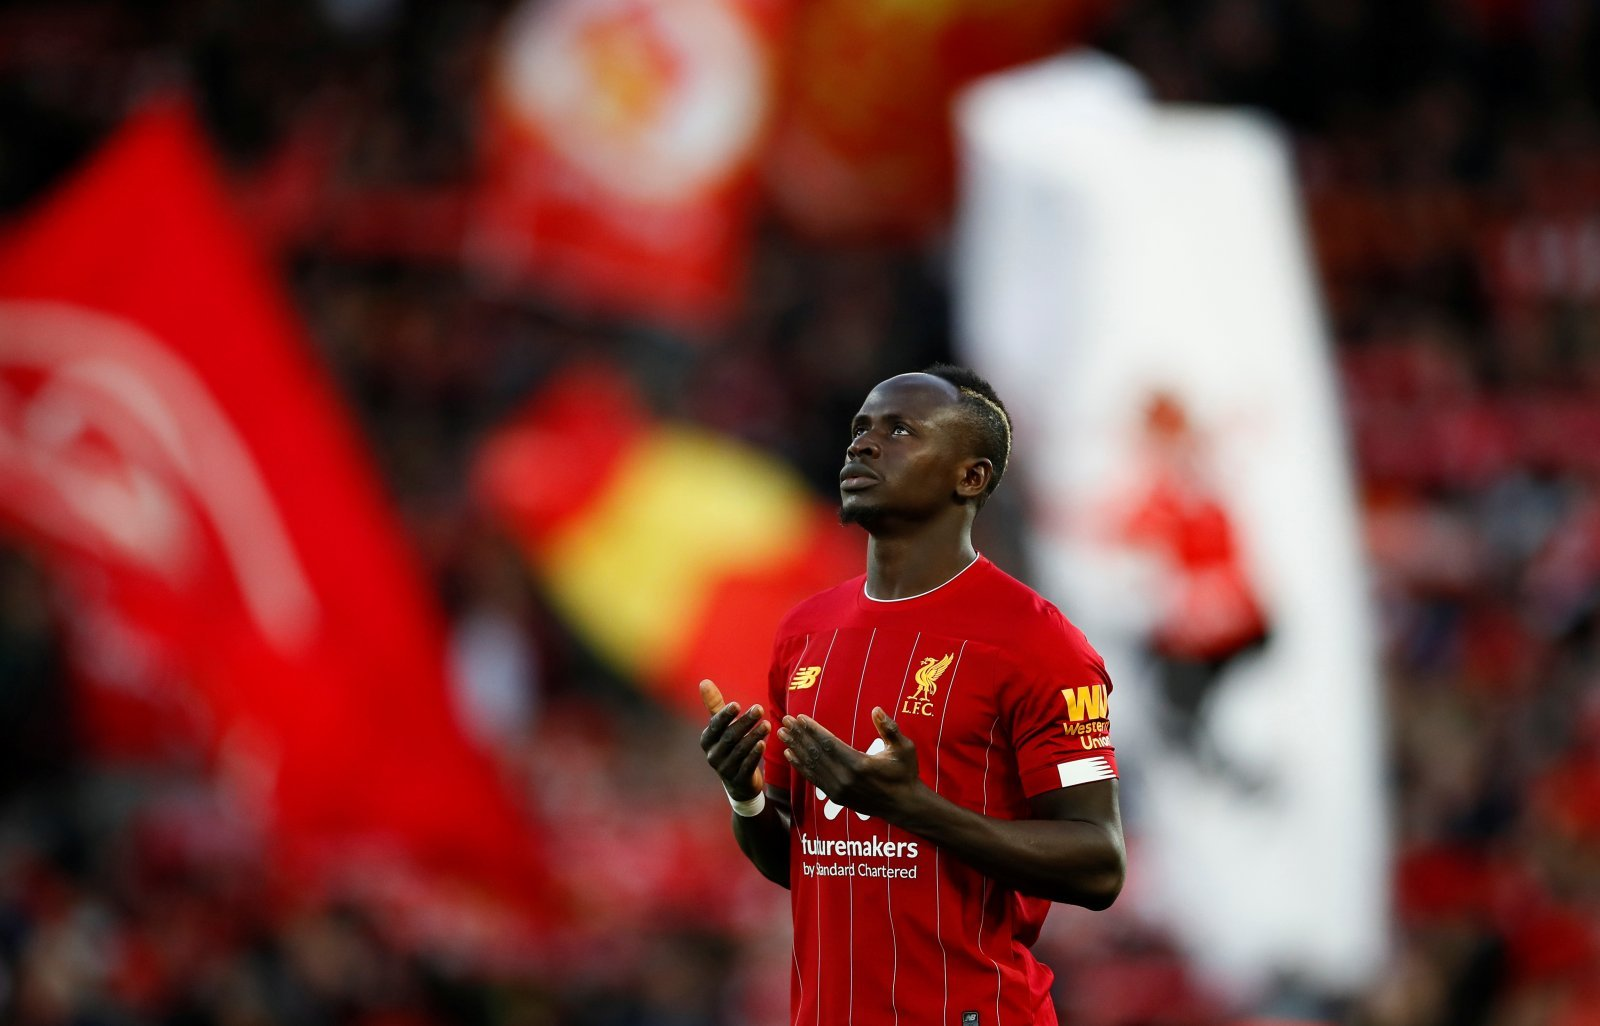 Liverpool: Fans praise 'humble' Sadio Mane for his actions before Africa Cup of Nations qualifier